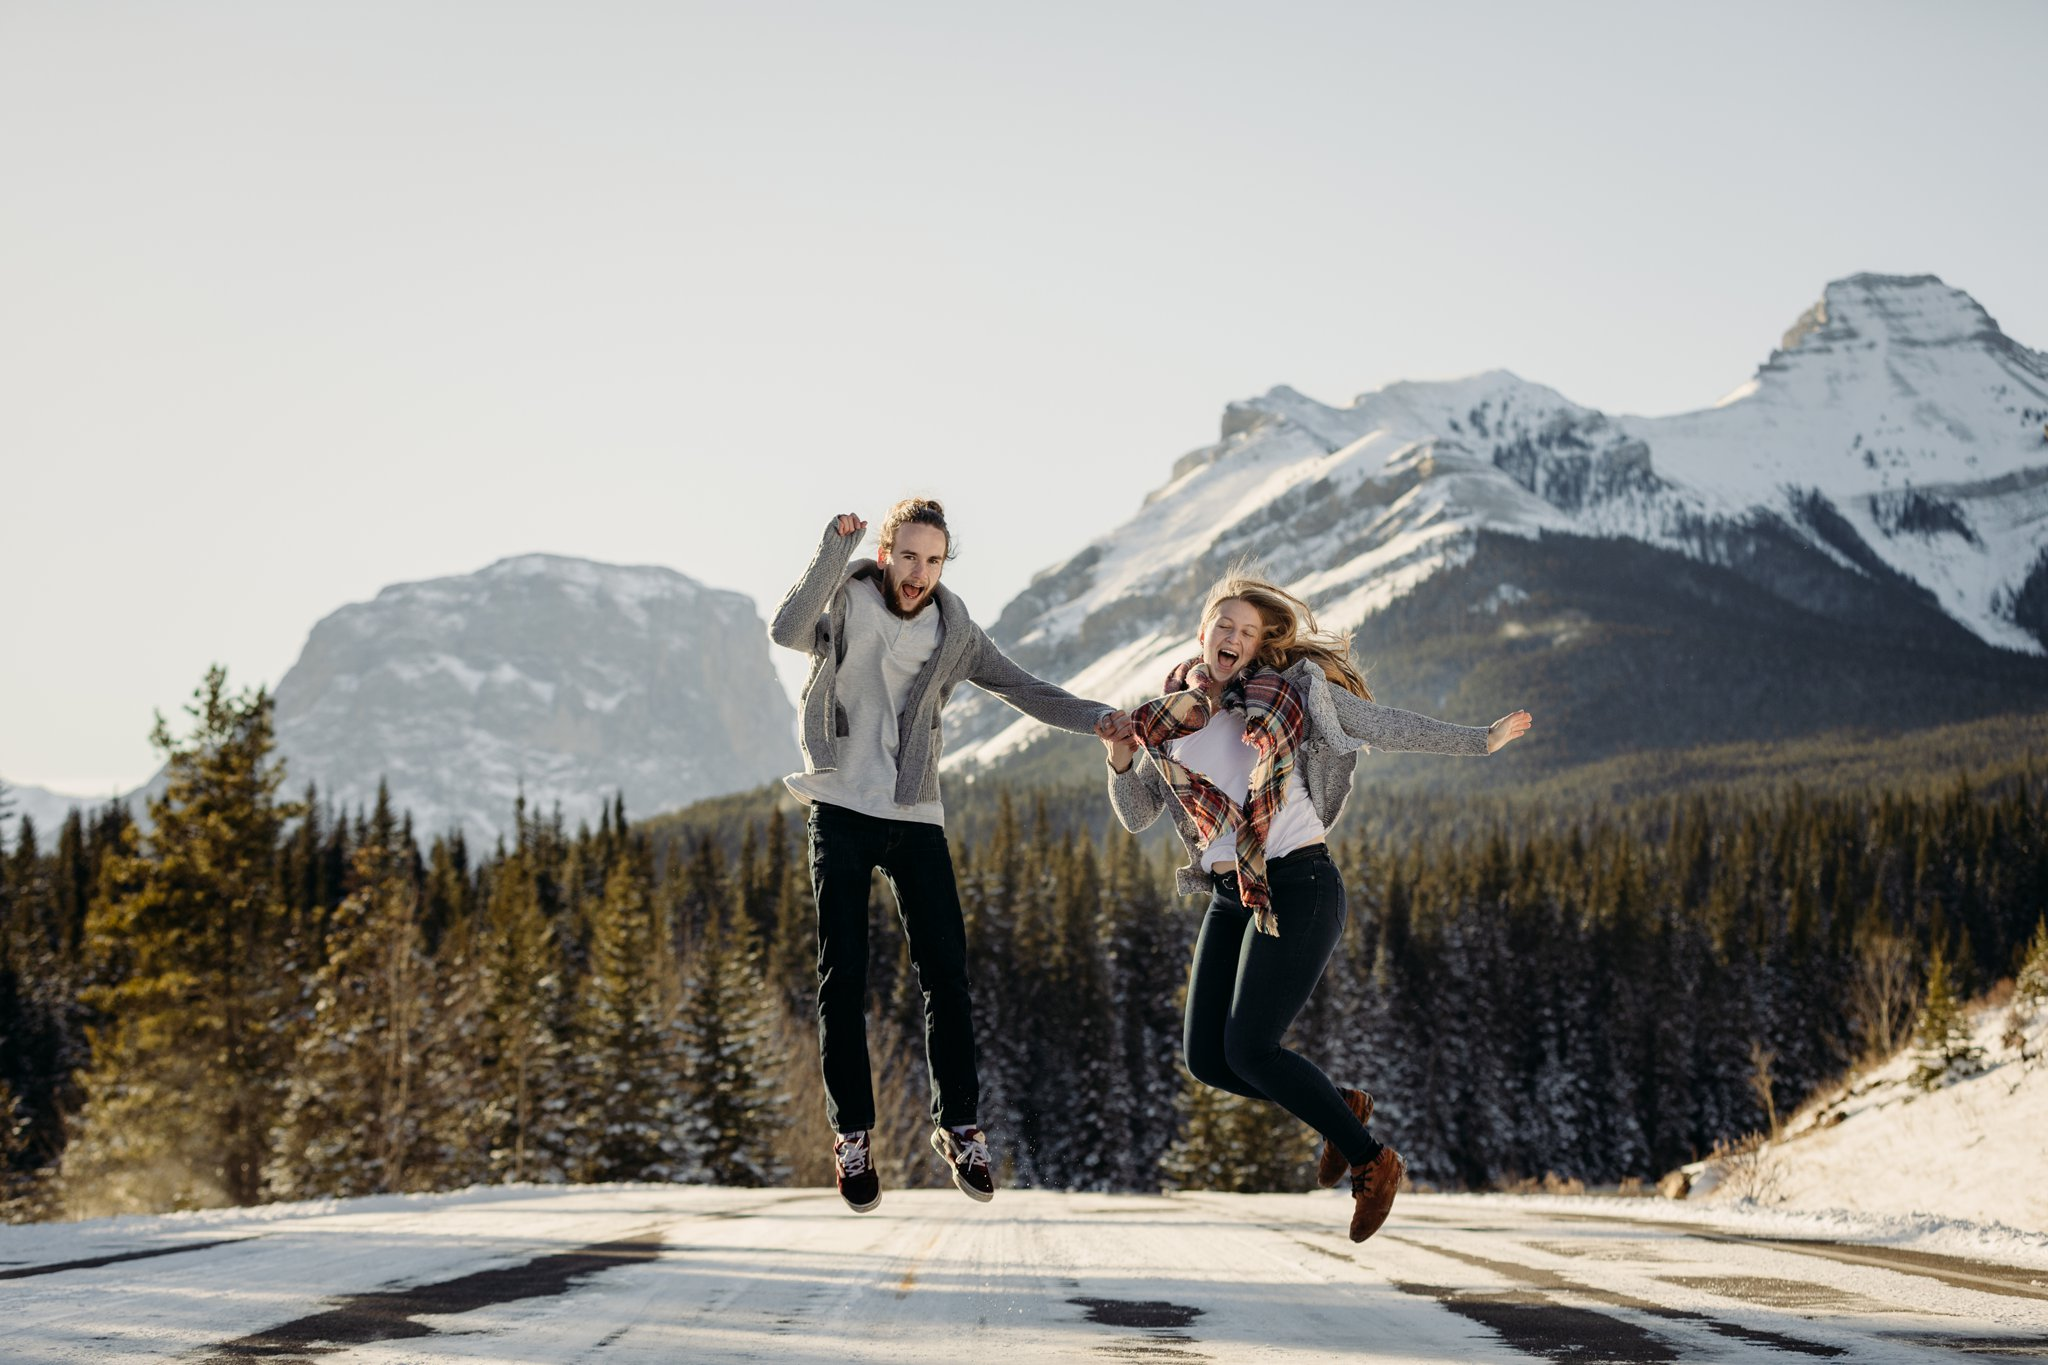 AshleyDaphnePhotography Calgary Photographer Wedding Engagement Sheep River Provincial Park Photos Kananskis Rocky Mountain Canmore Photographer_0035.jpg